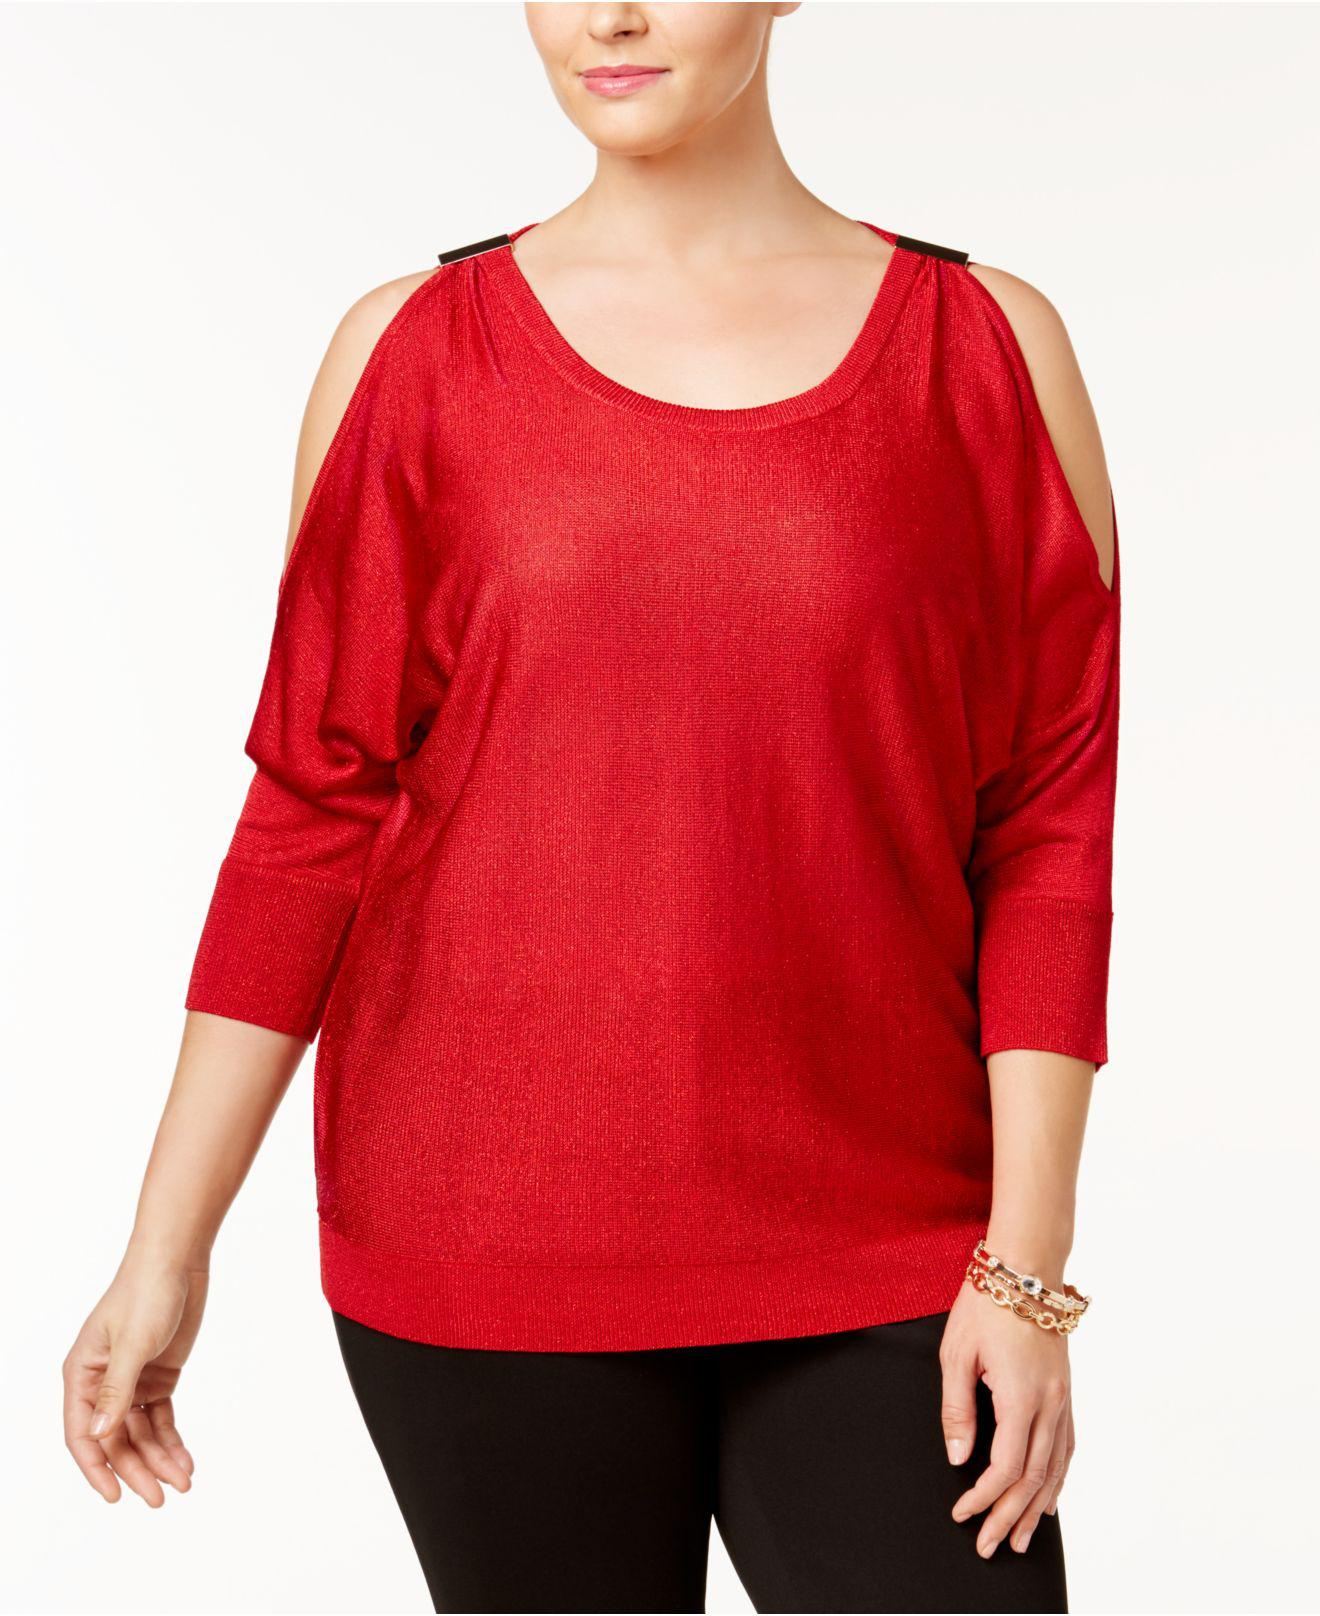 58b89793fb7 Lyst - Inc International Concepts Plus Size Cold-shoulder Sweater in Red